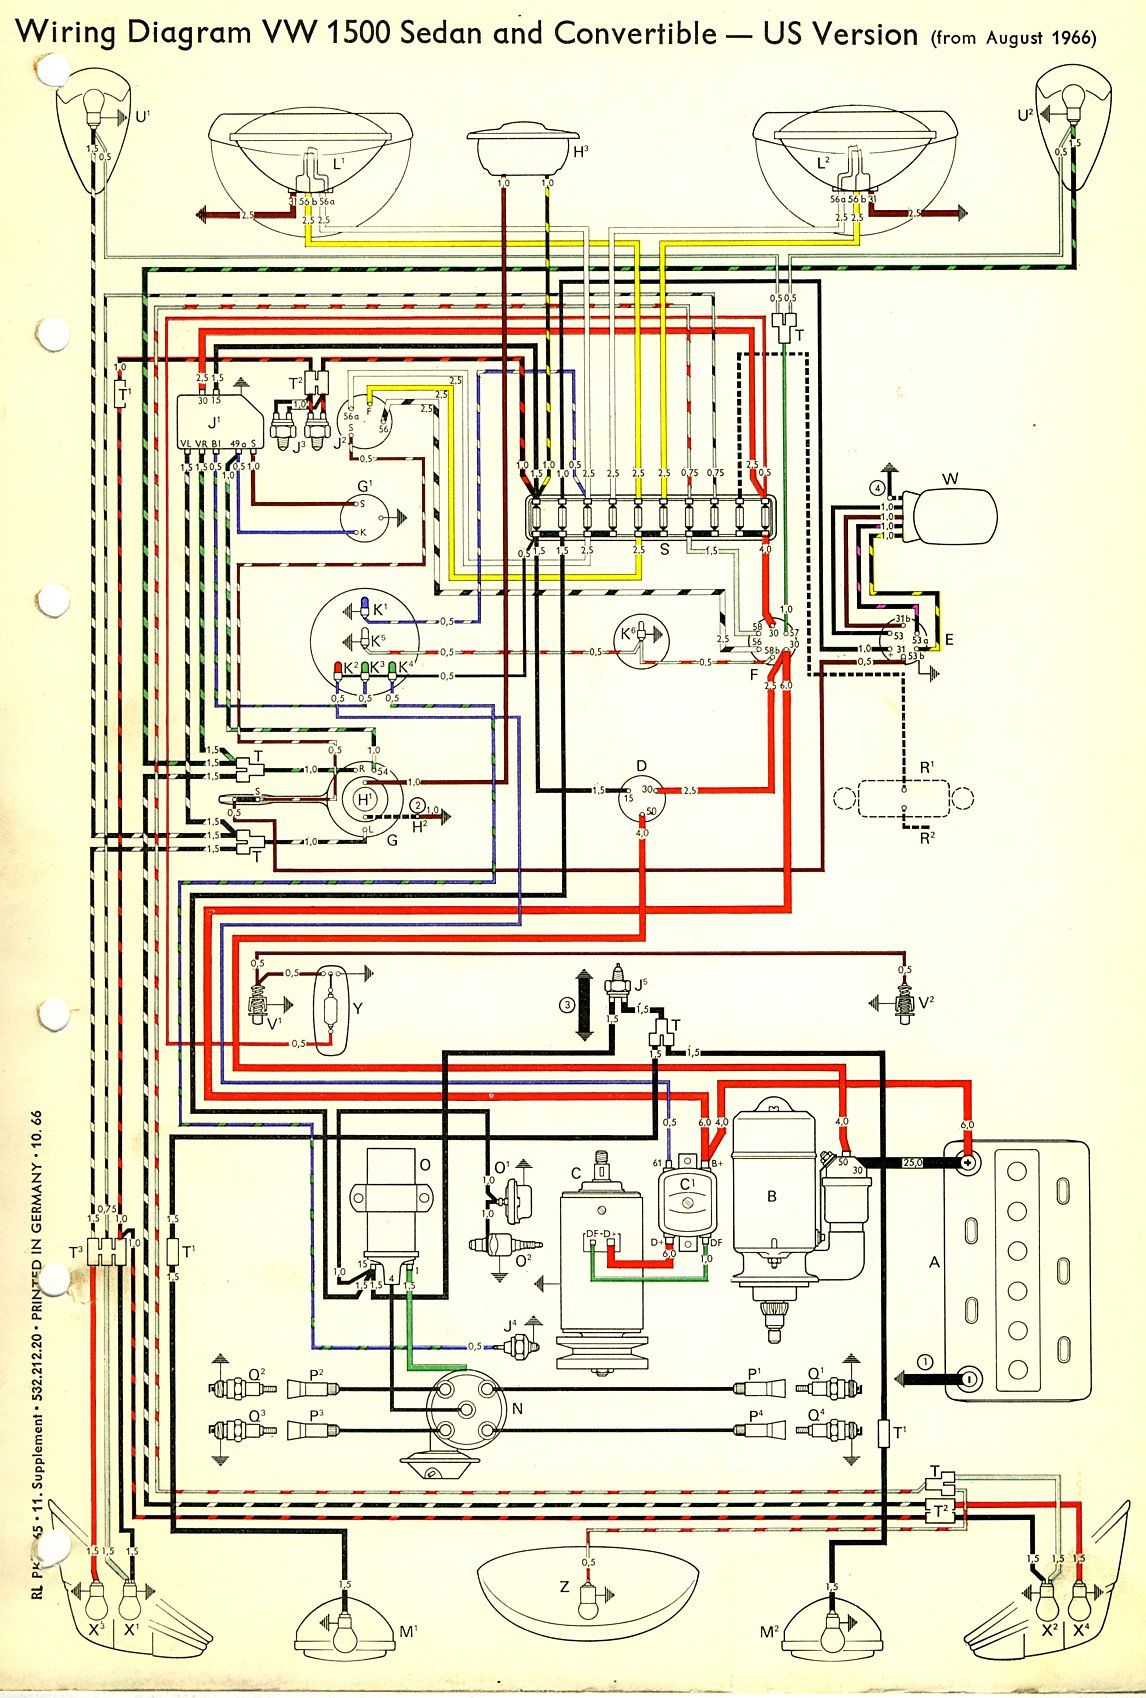 hight resolution of 1967 beetle wiring diagram usa thegoldenbug com